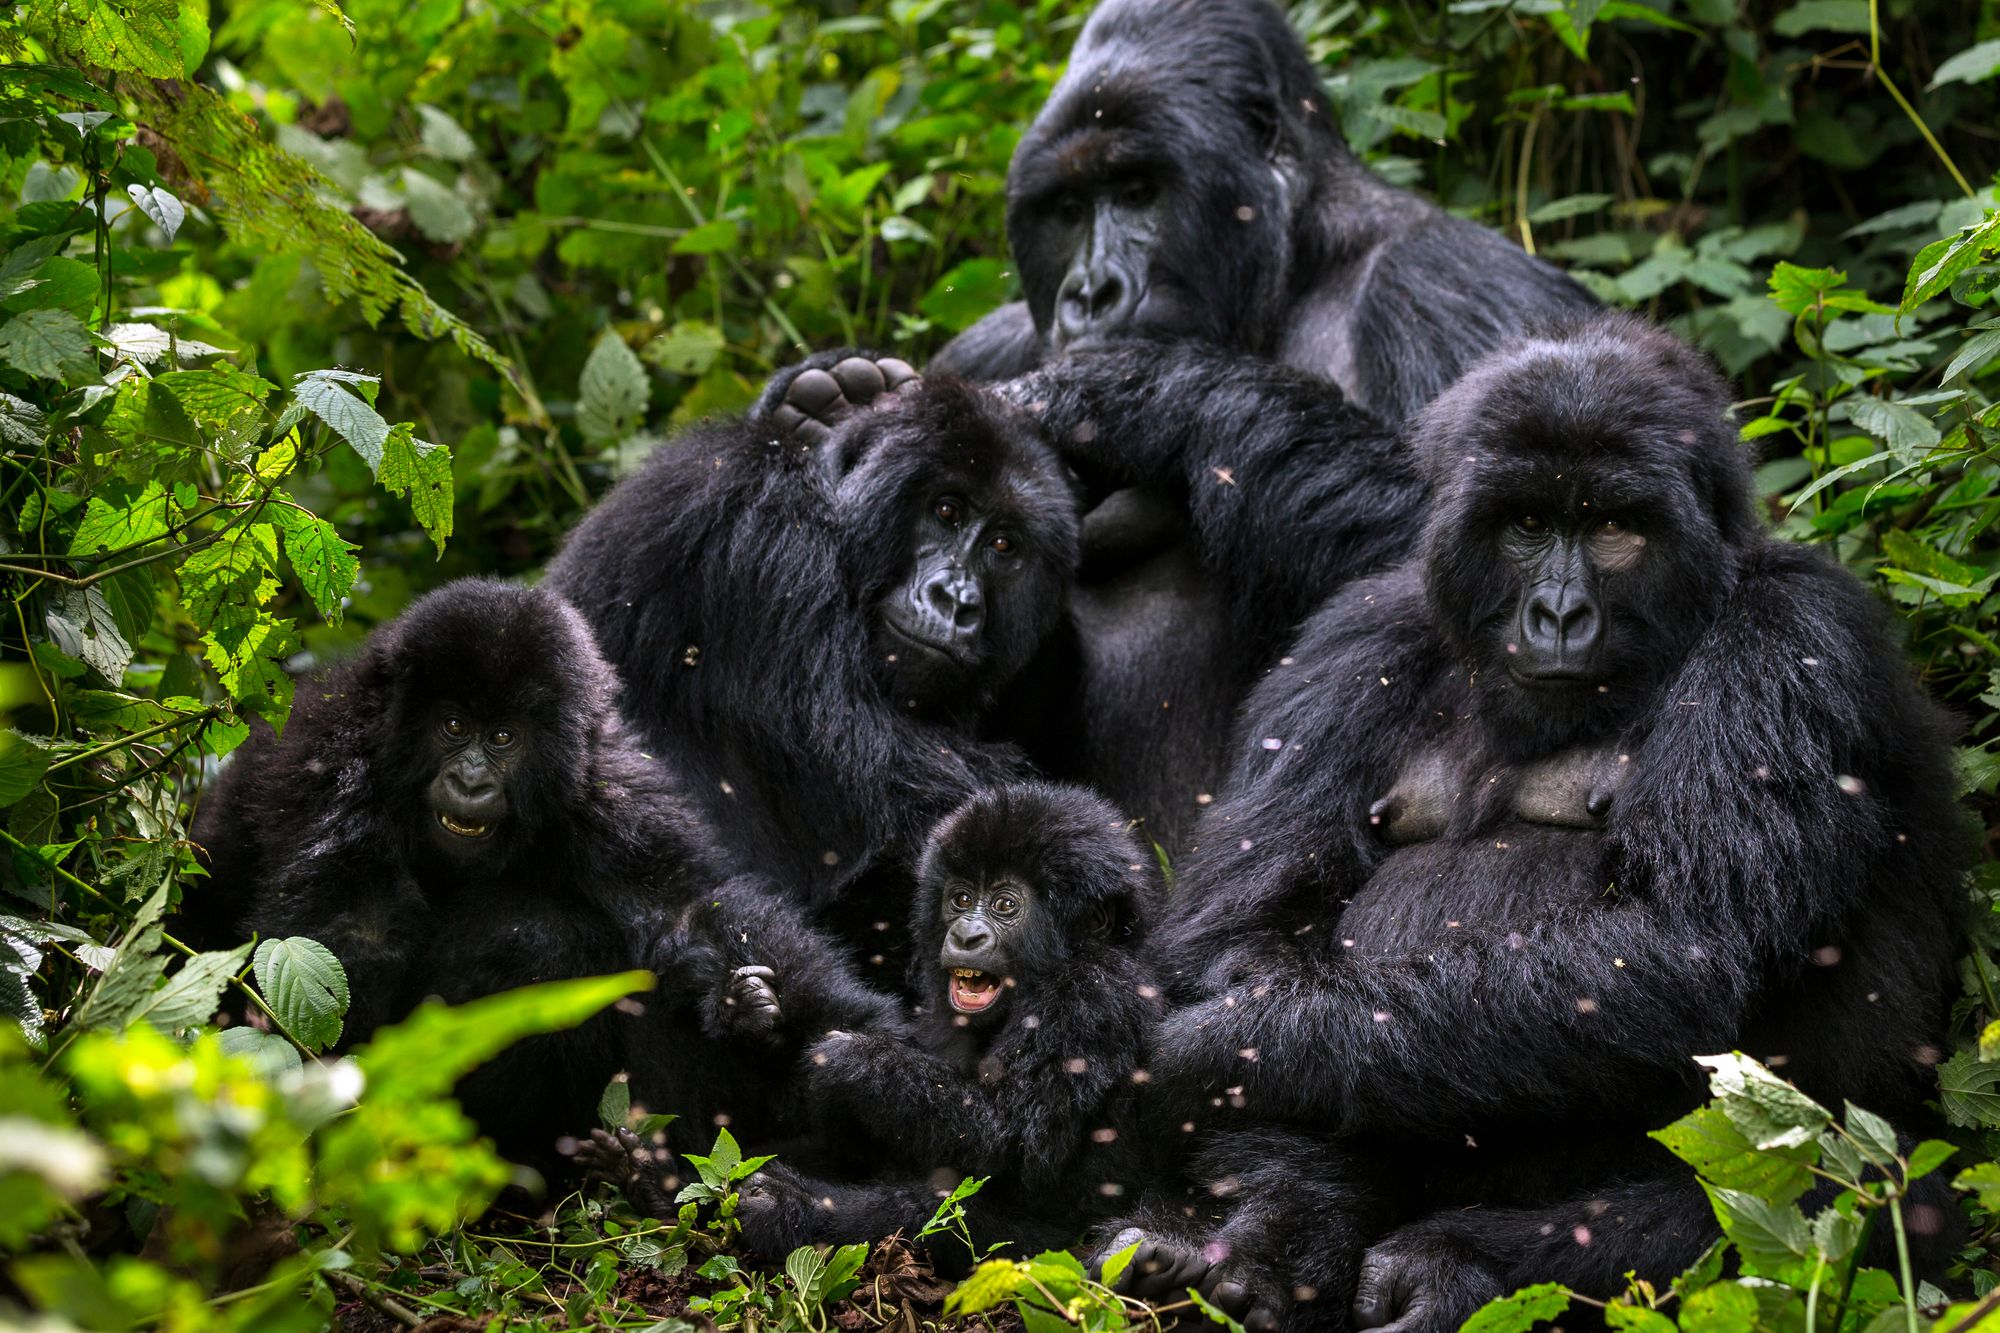 Gorilla-Familie im Virunga Nationalpark, Demokratische Republik Kongo.